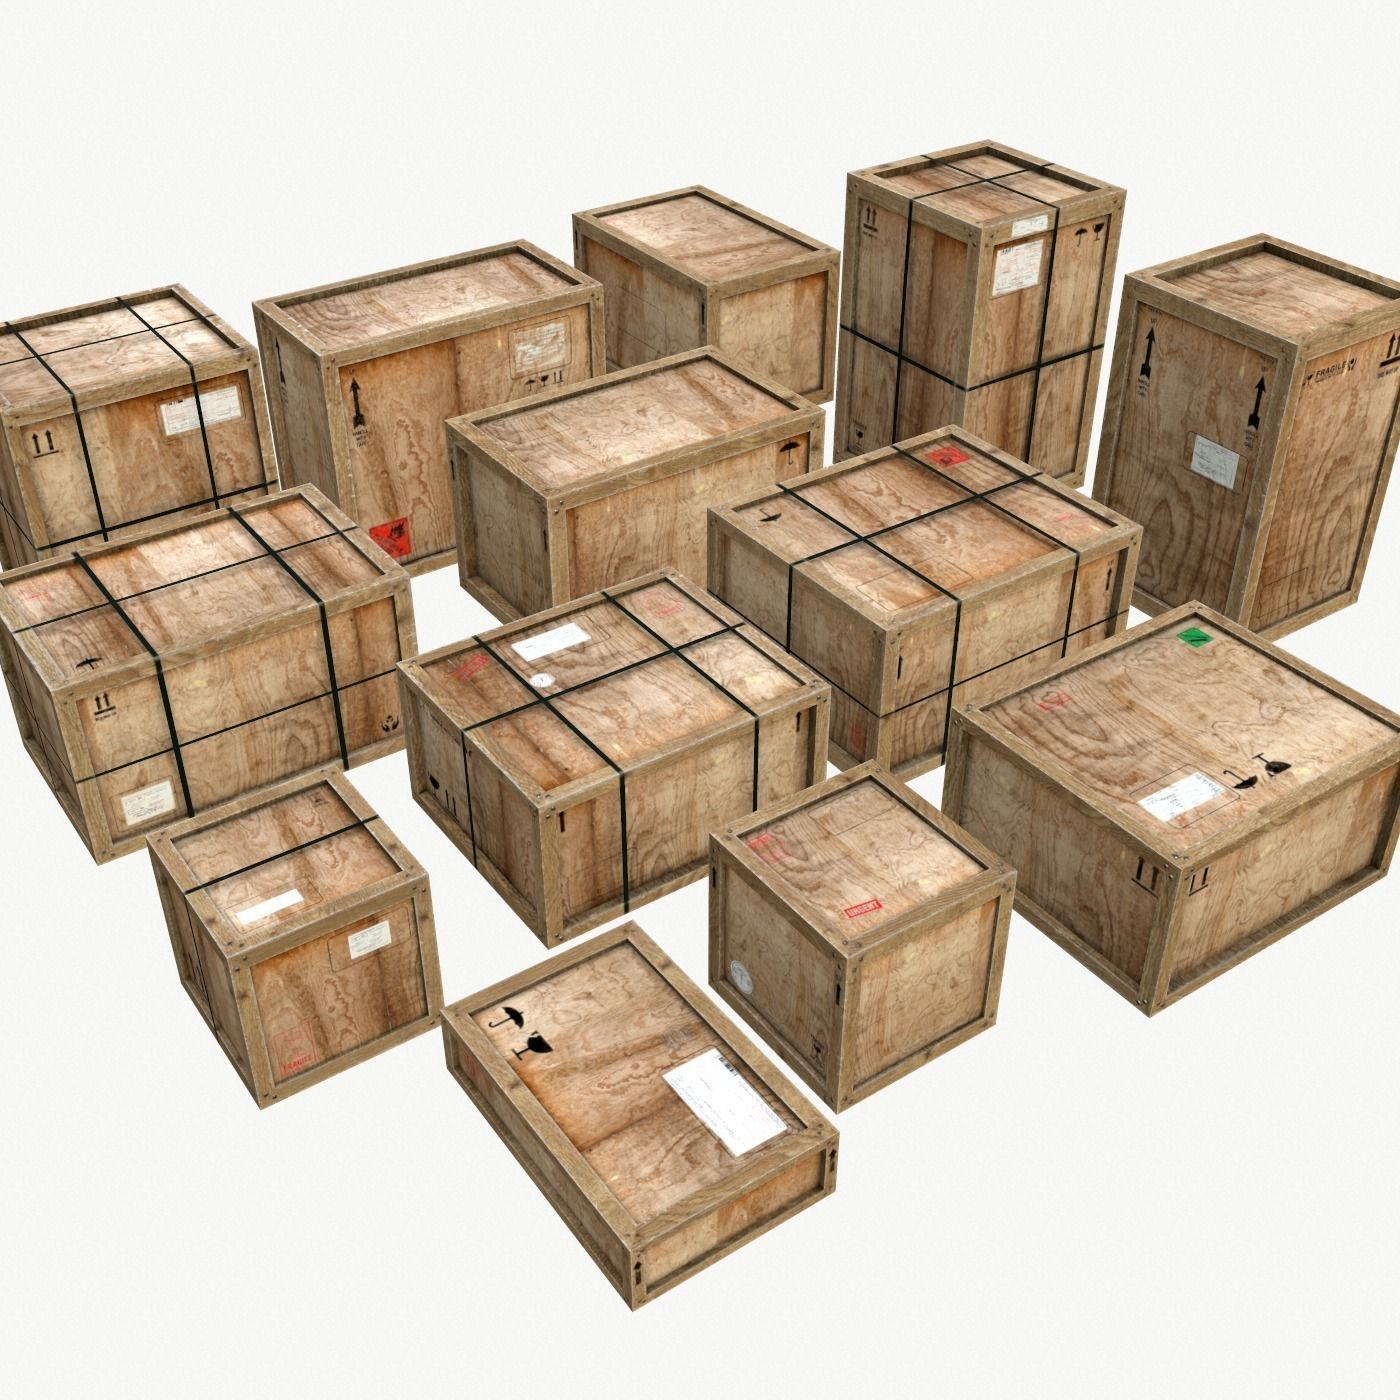 Old Wooden Cargo Crates PBR